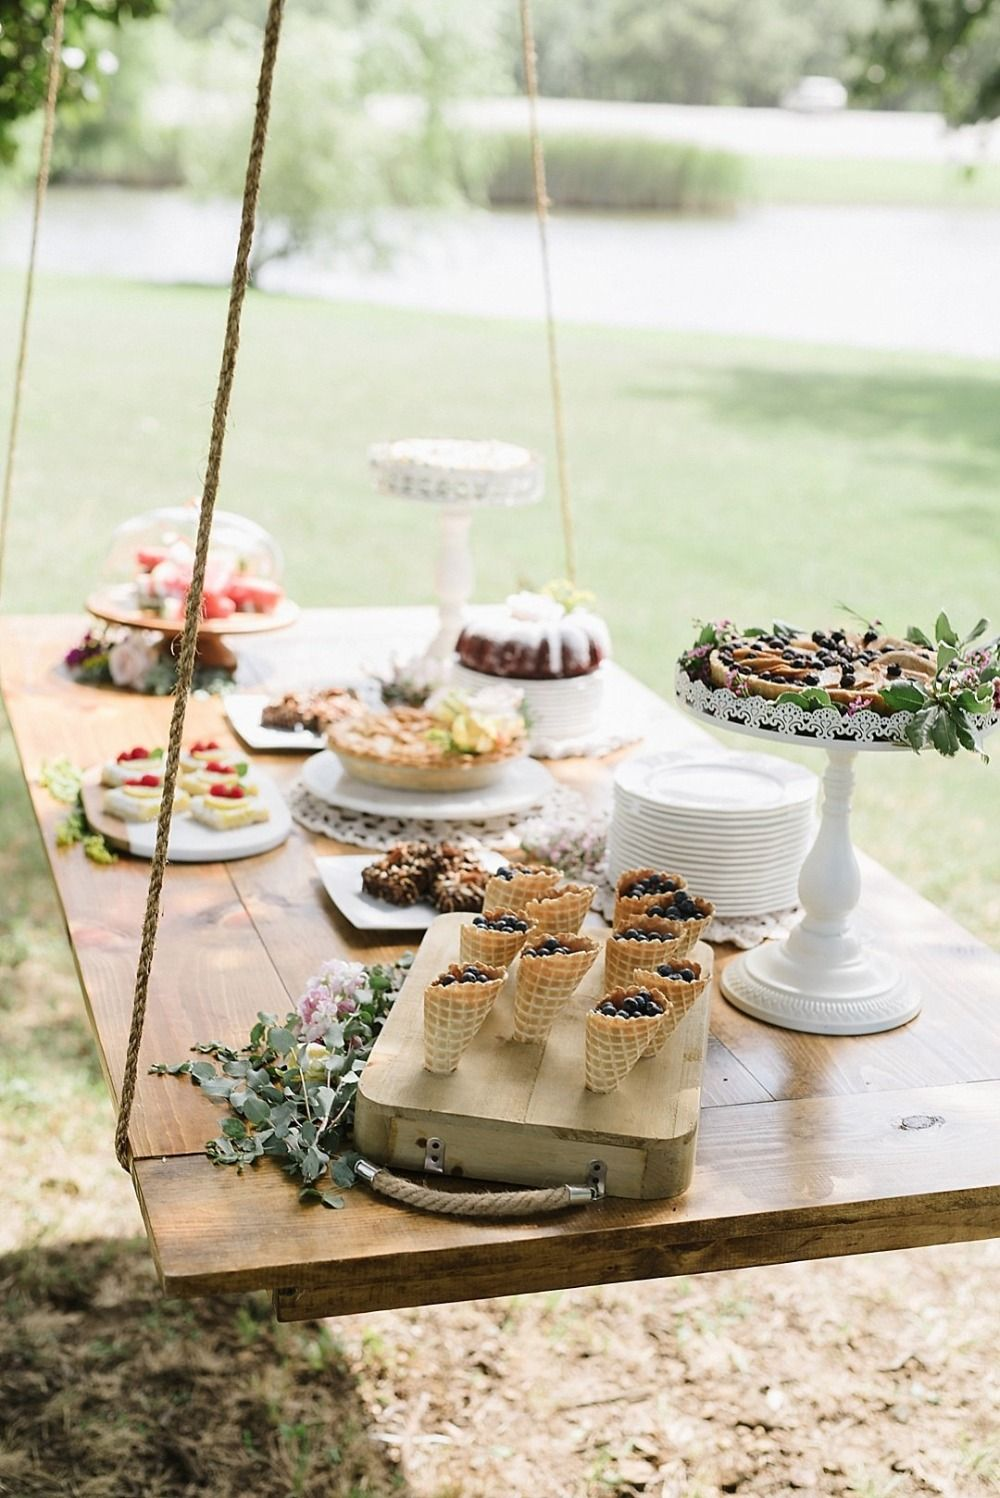 Wedding cake table decoration ideas  Blue Watercolor Inspired Wedding Ideas in the Woods  Dessert table